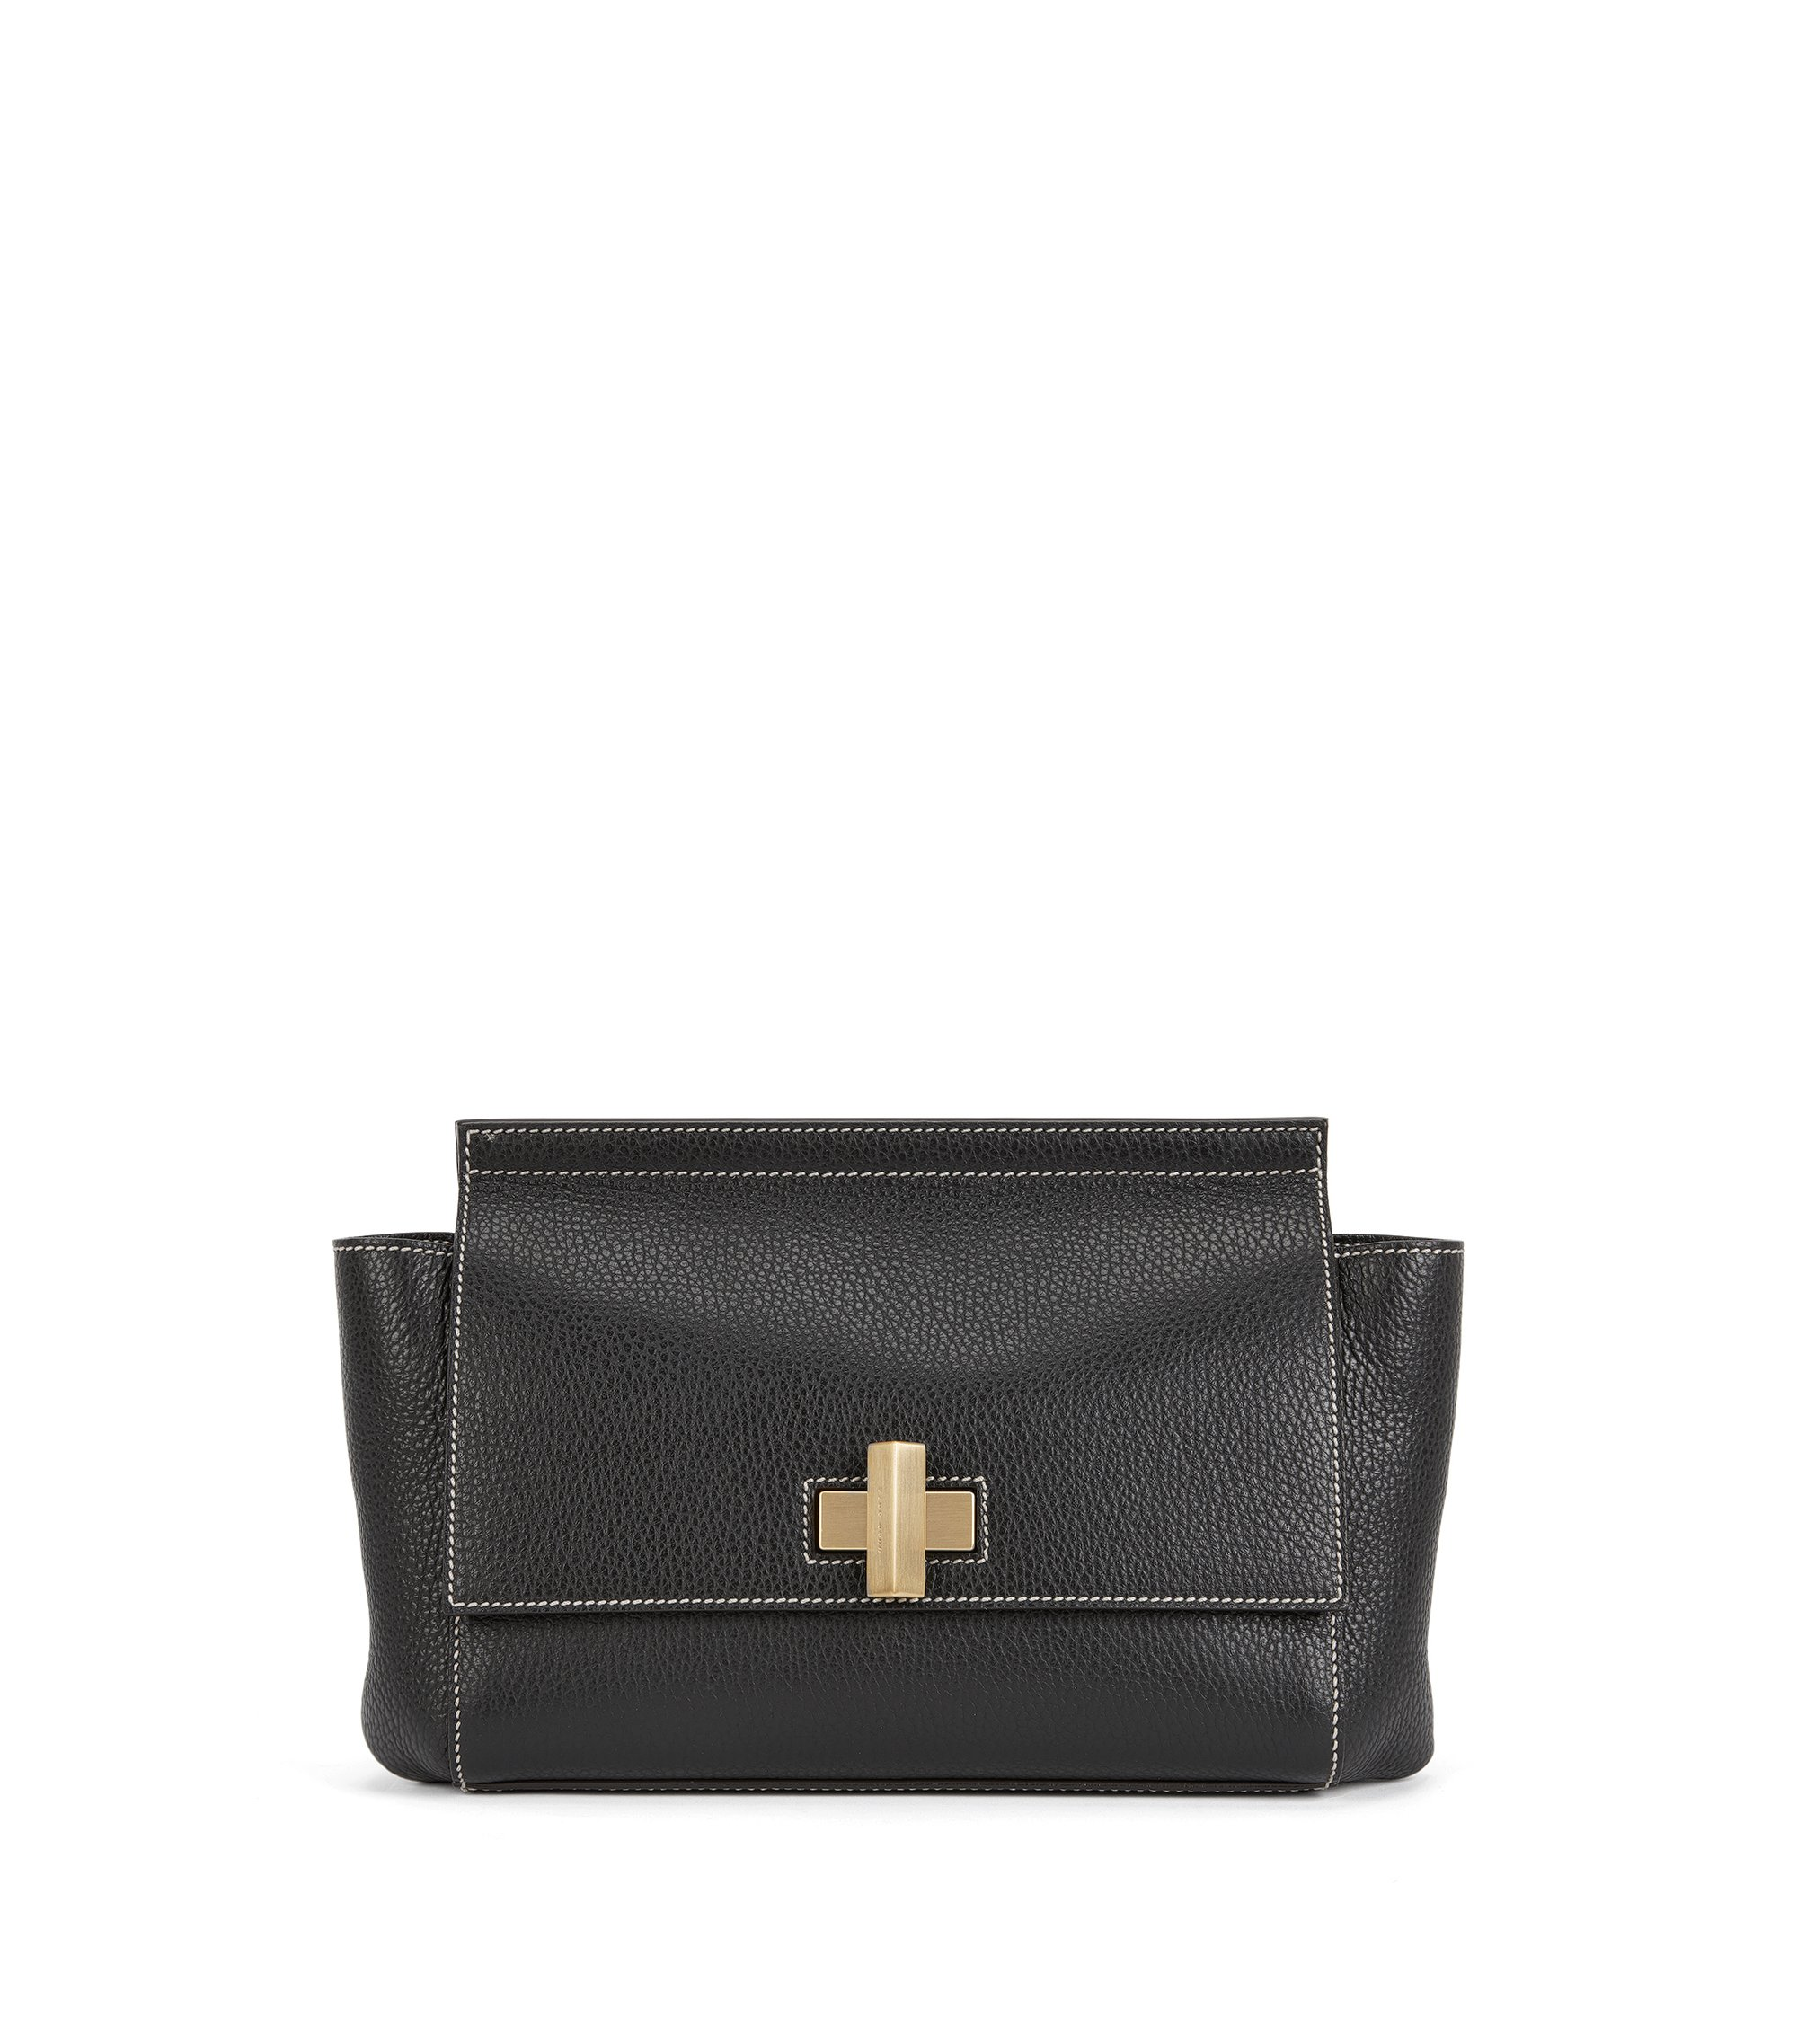 Small BOSS Bespoke Soft bag in grainy leather, Black